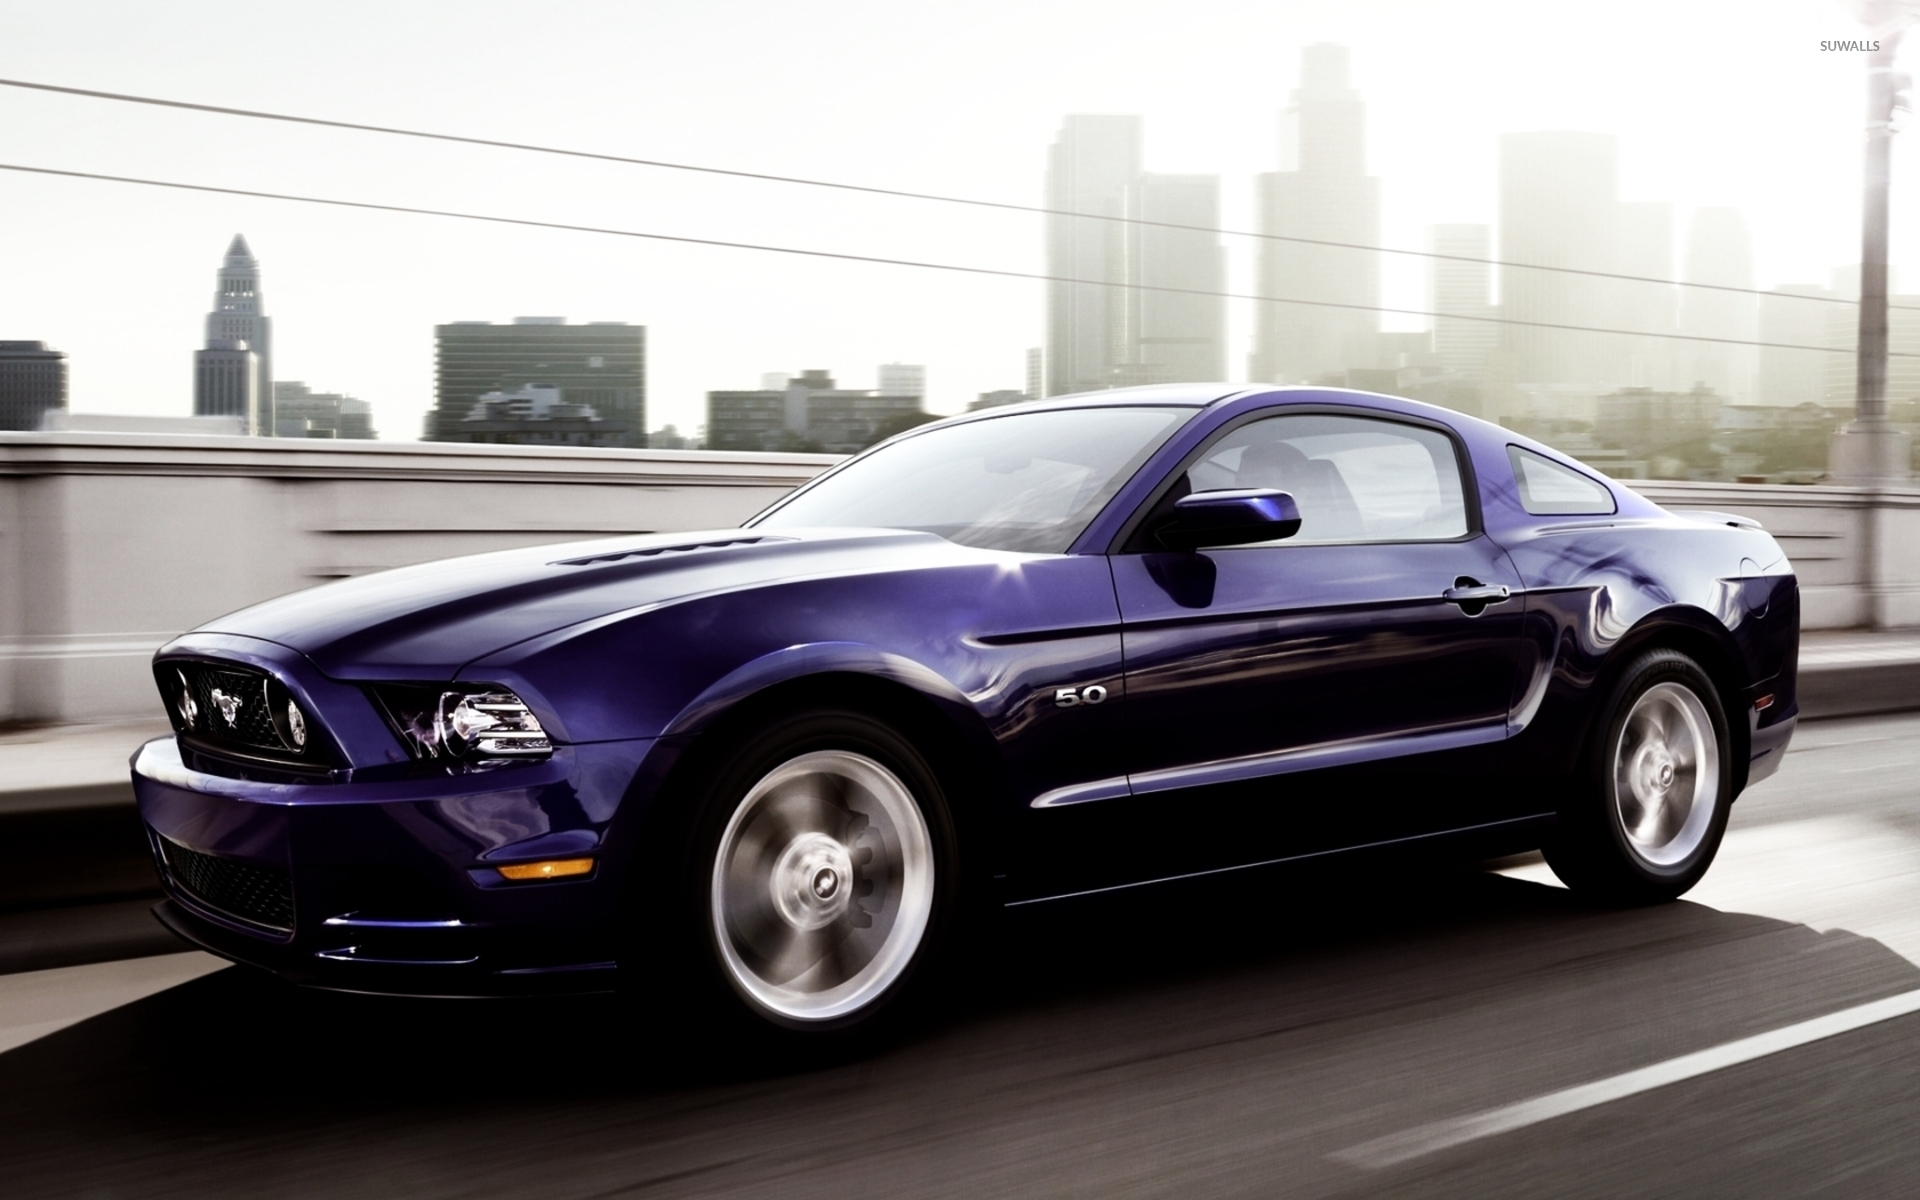 2013 Purple Ford Mustang Gt Side View Wallpaper Car